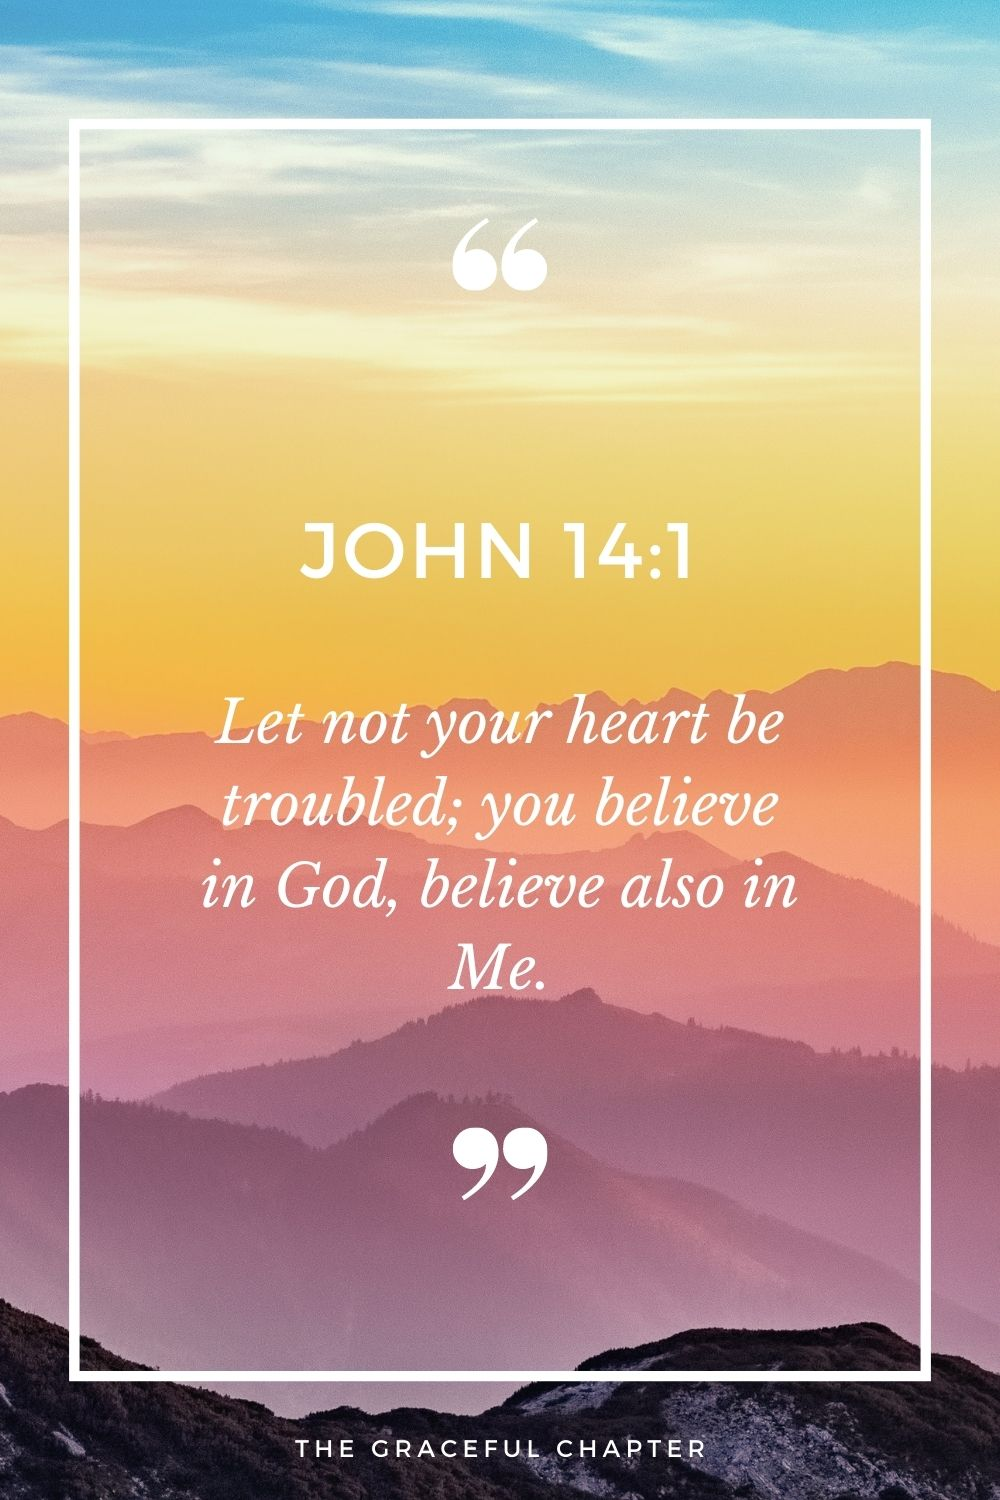 Let not your heart be troubled; you believe in God, believe also in Me. John 14:1